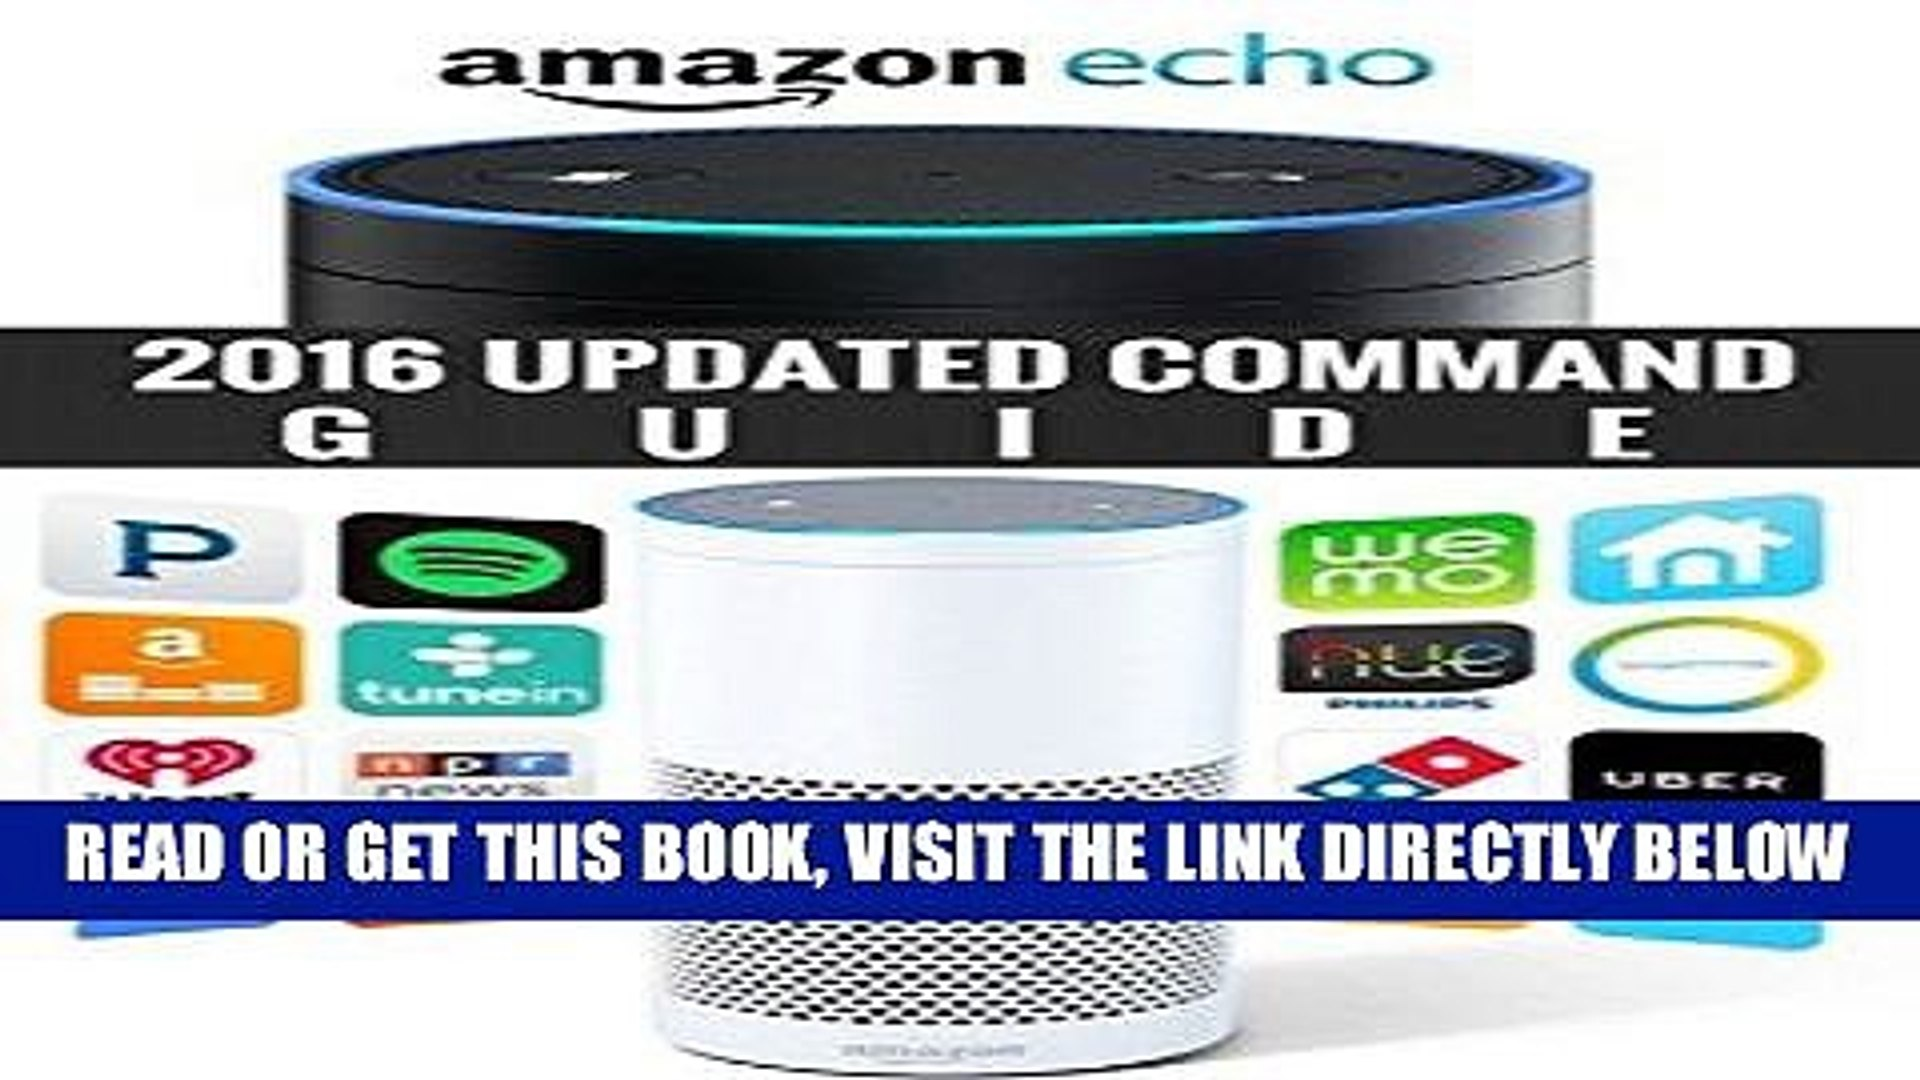 [Free Read] Amazon Echo : Amazon Echo Command Guide 2016 Updated (Echo, Amazon Echo User Manual,